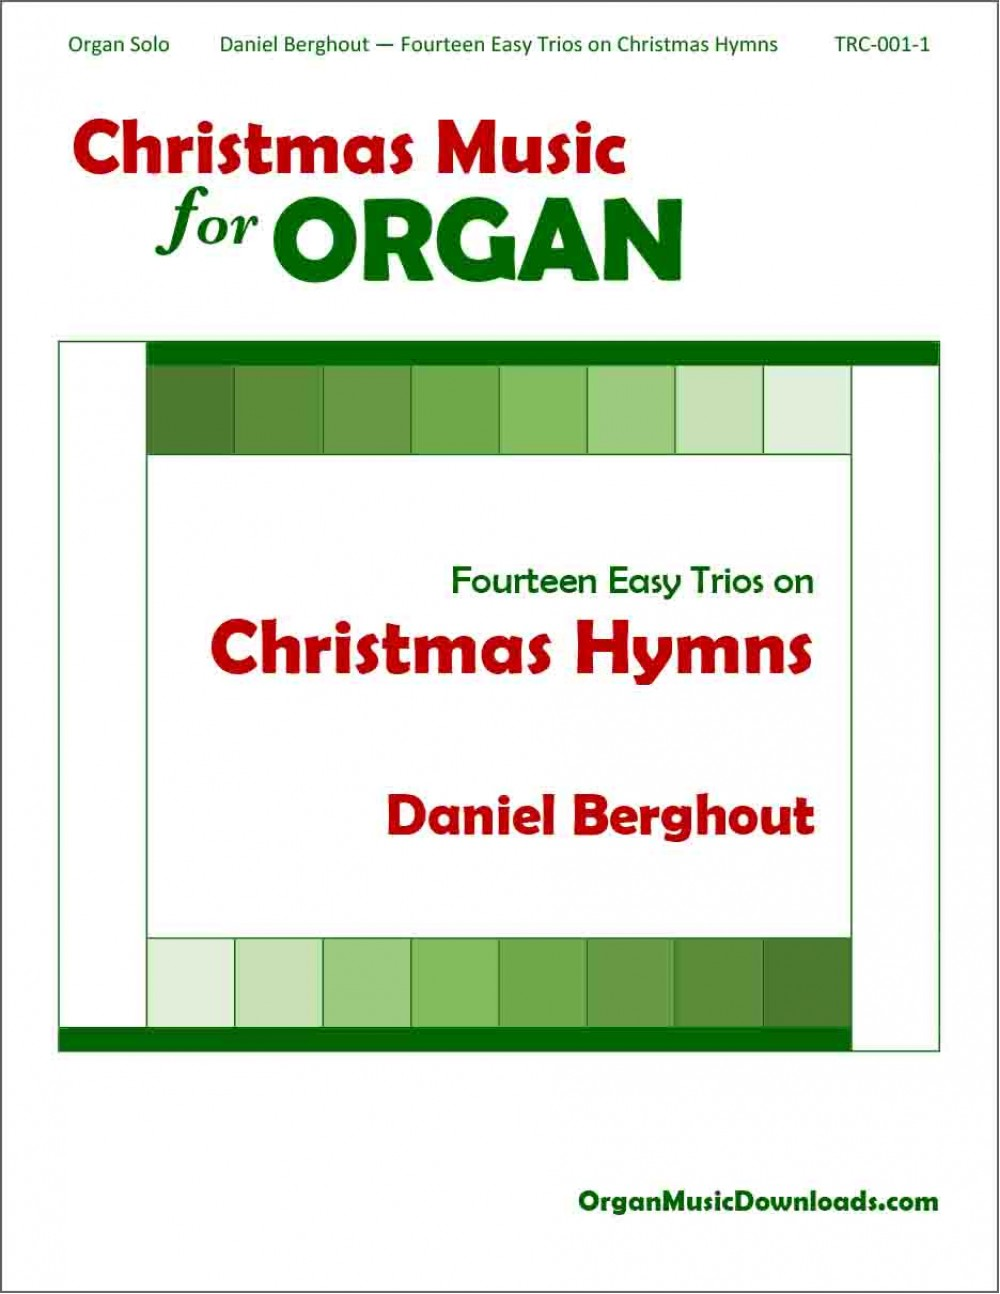 Christmas Hymns.Berghout Daniel Fourteen Easy Trios On Christmas Hymns